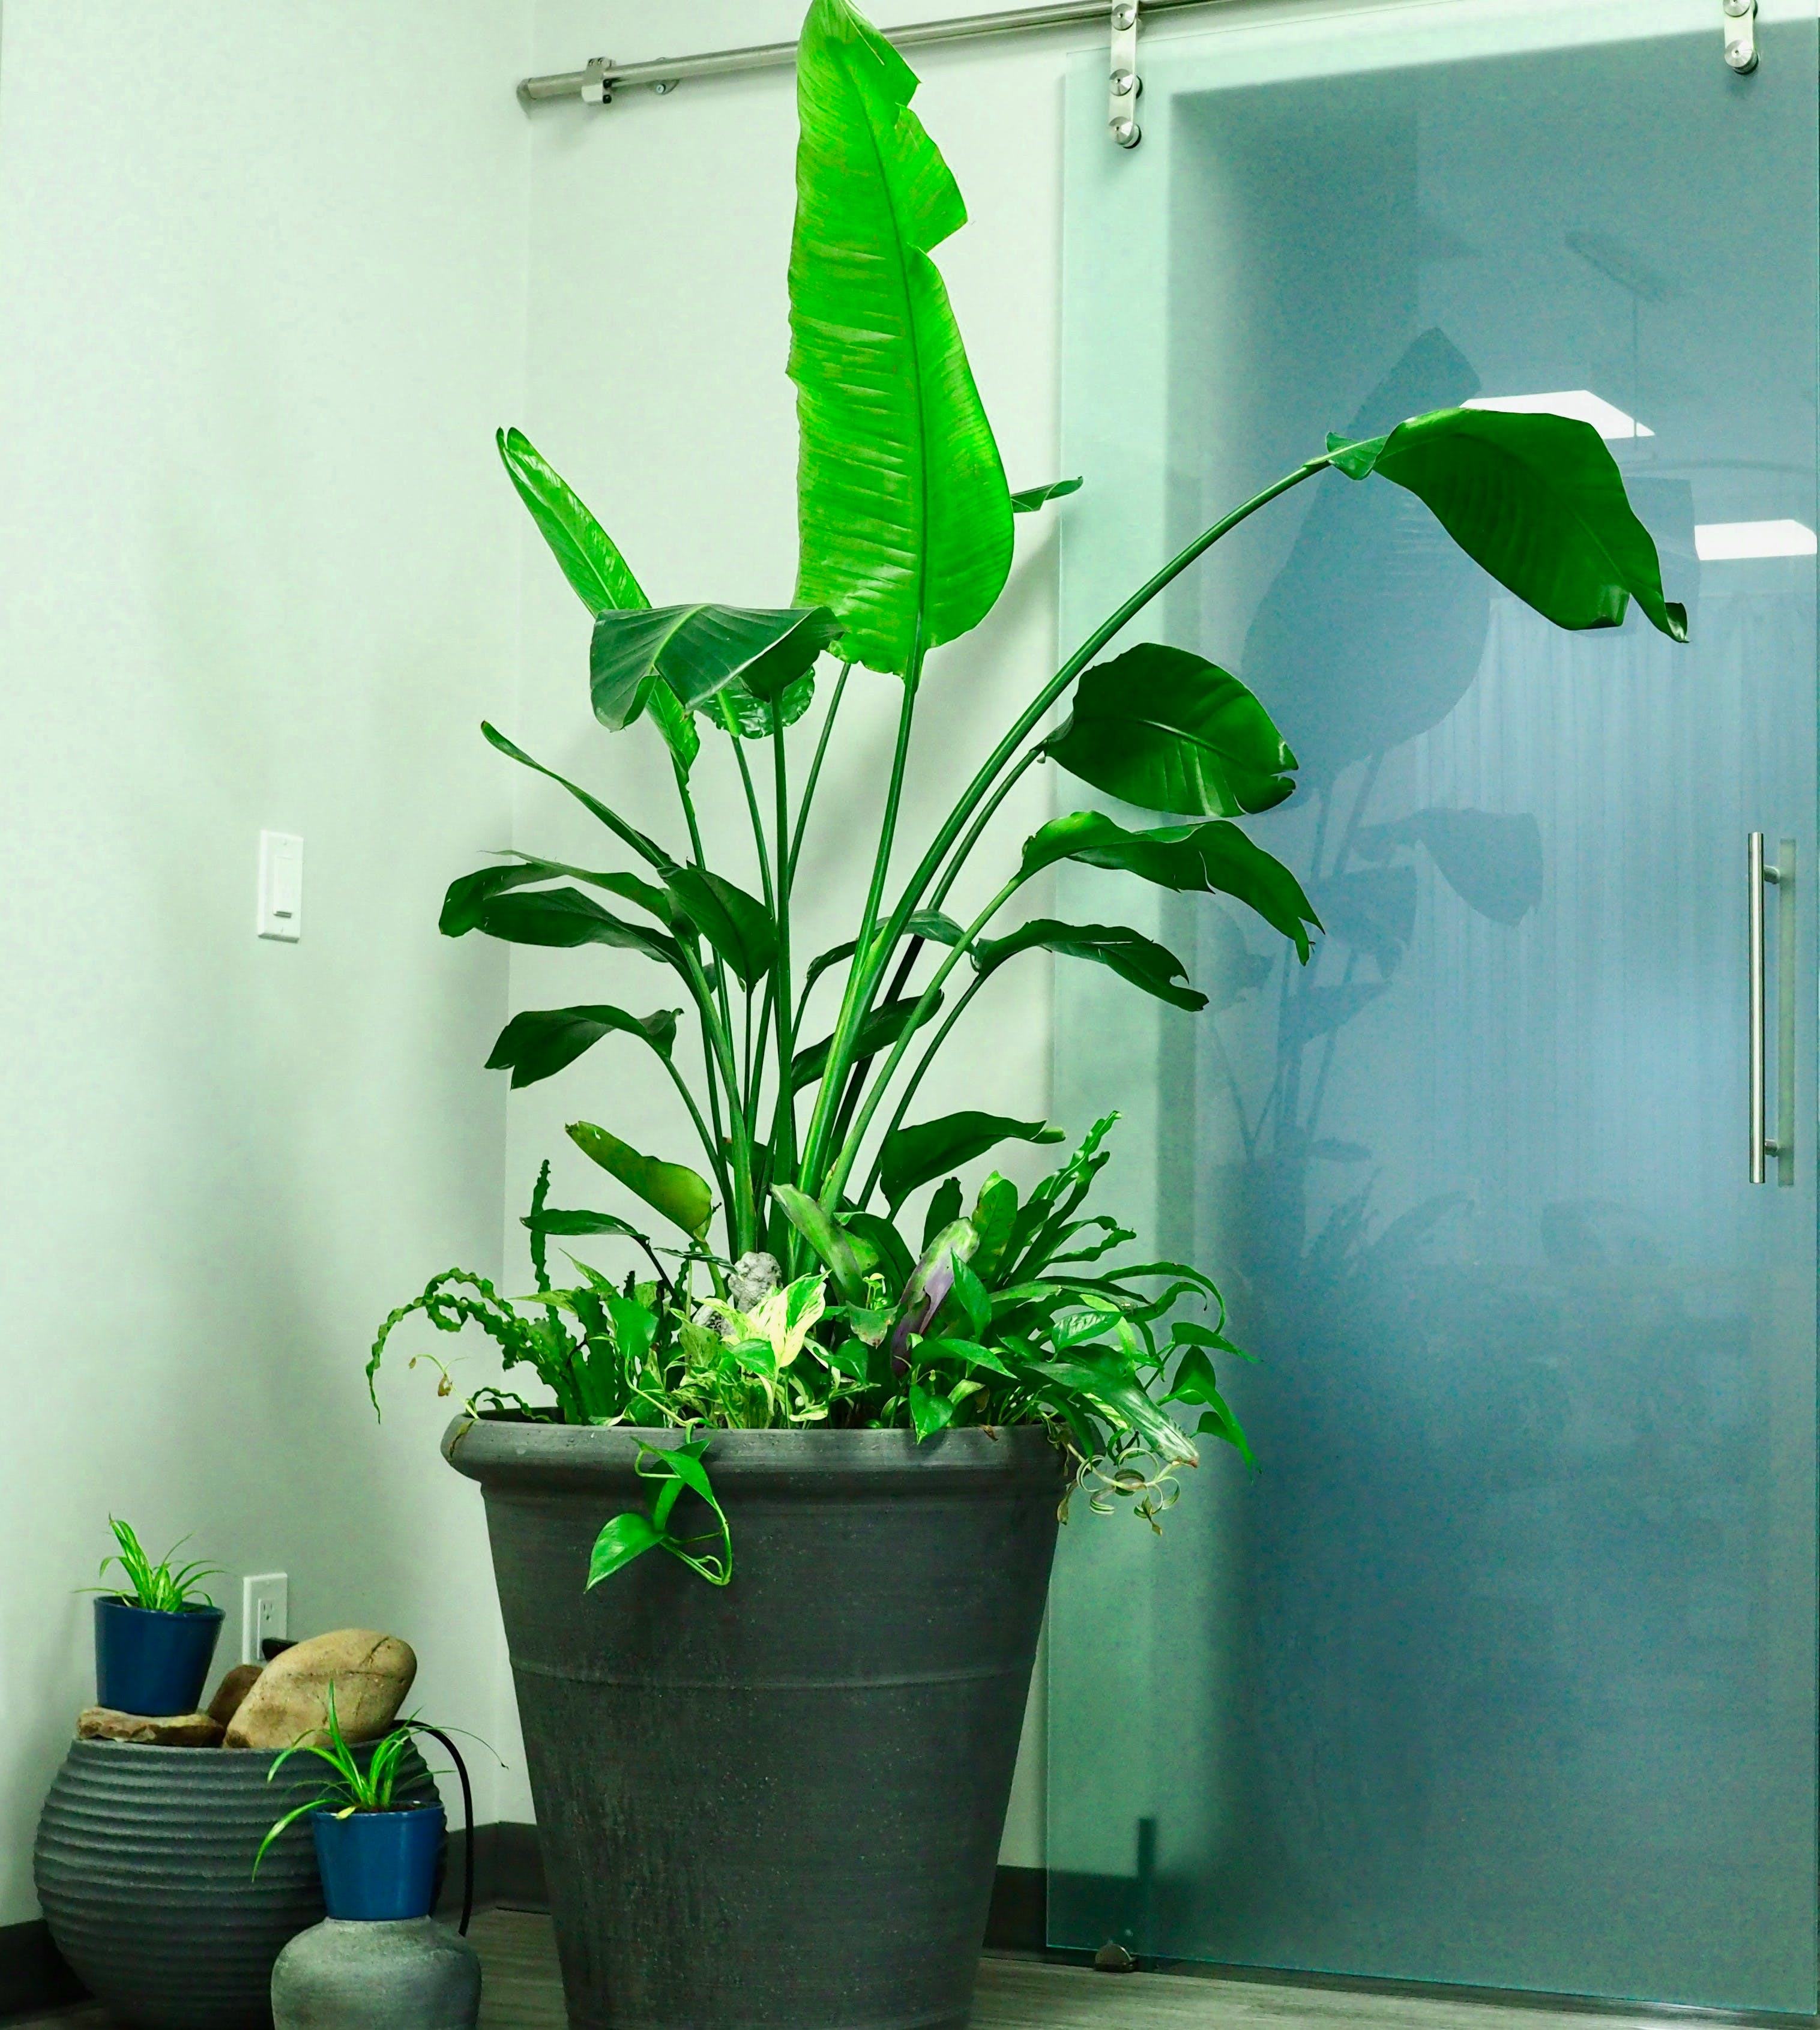 Free stock photo of glass doors, Green potted plant in office